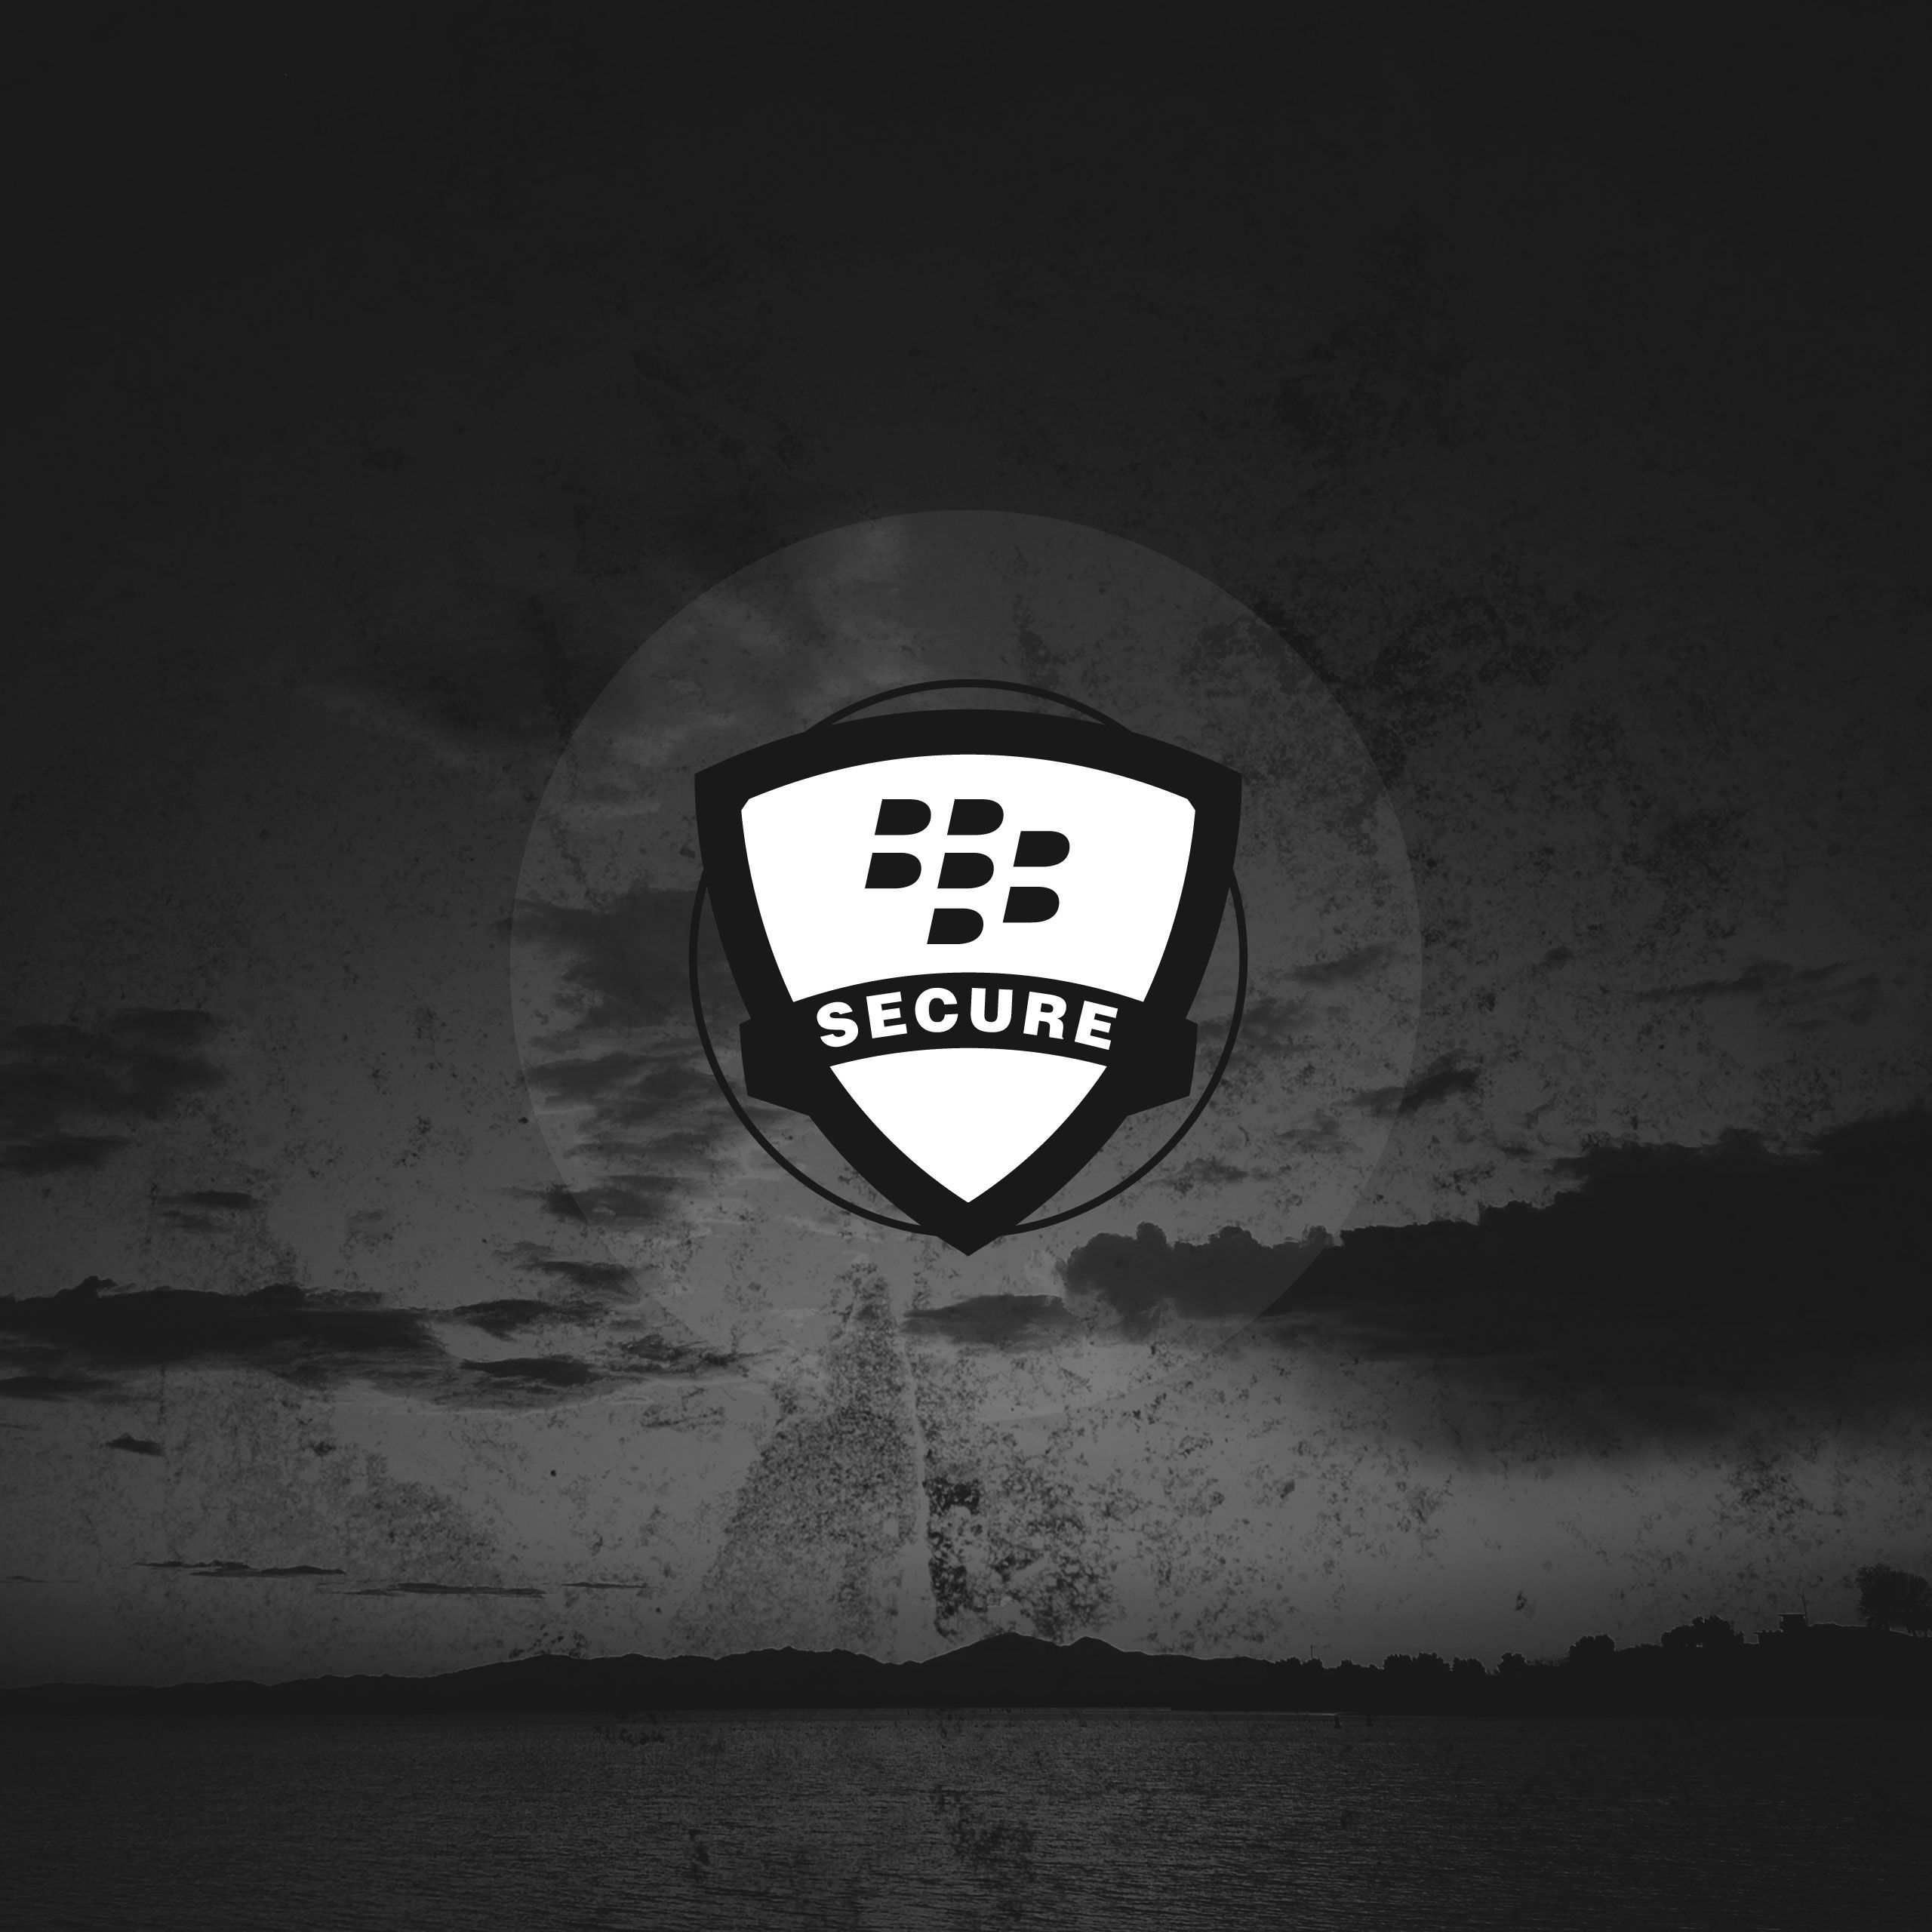 60 BlackBerry HD Wallpapers   Download at WallpaperBro 2560x2560